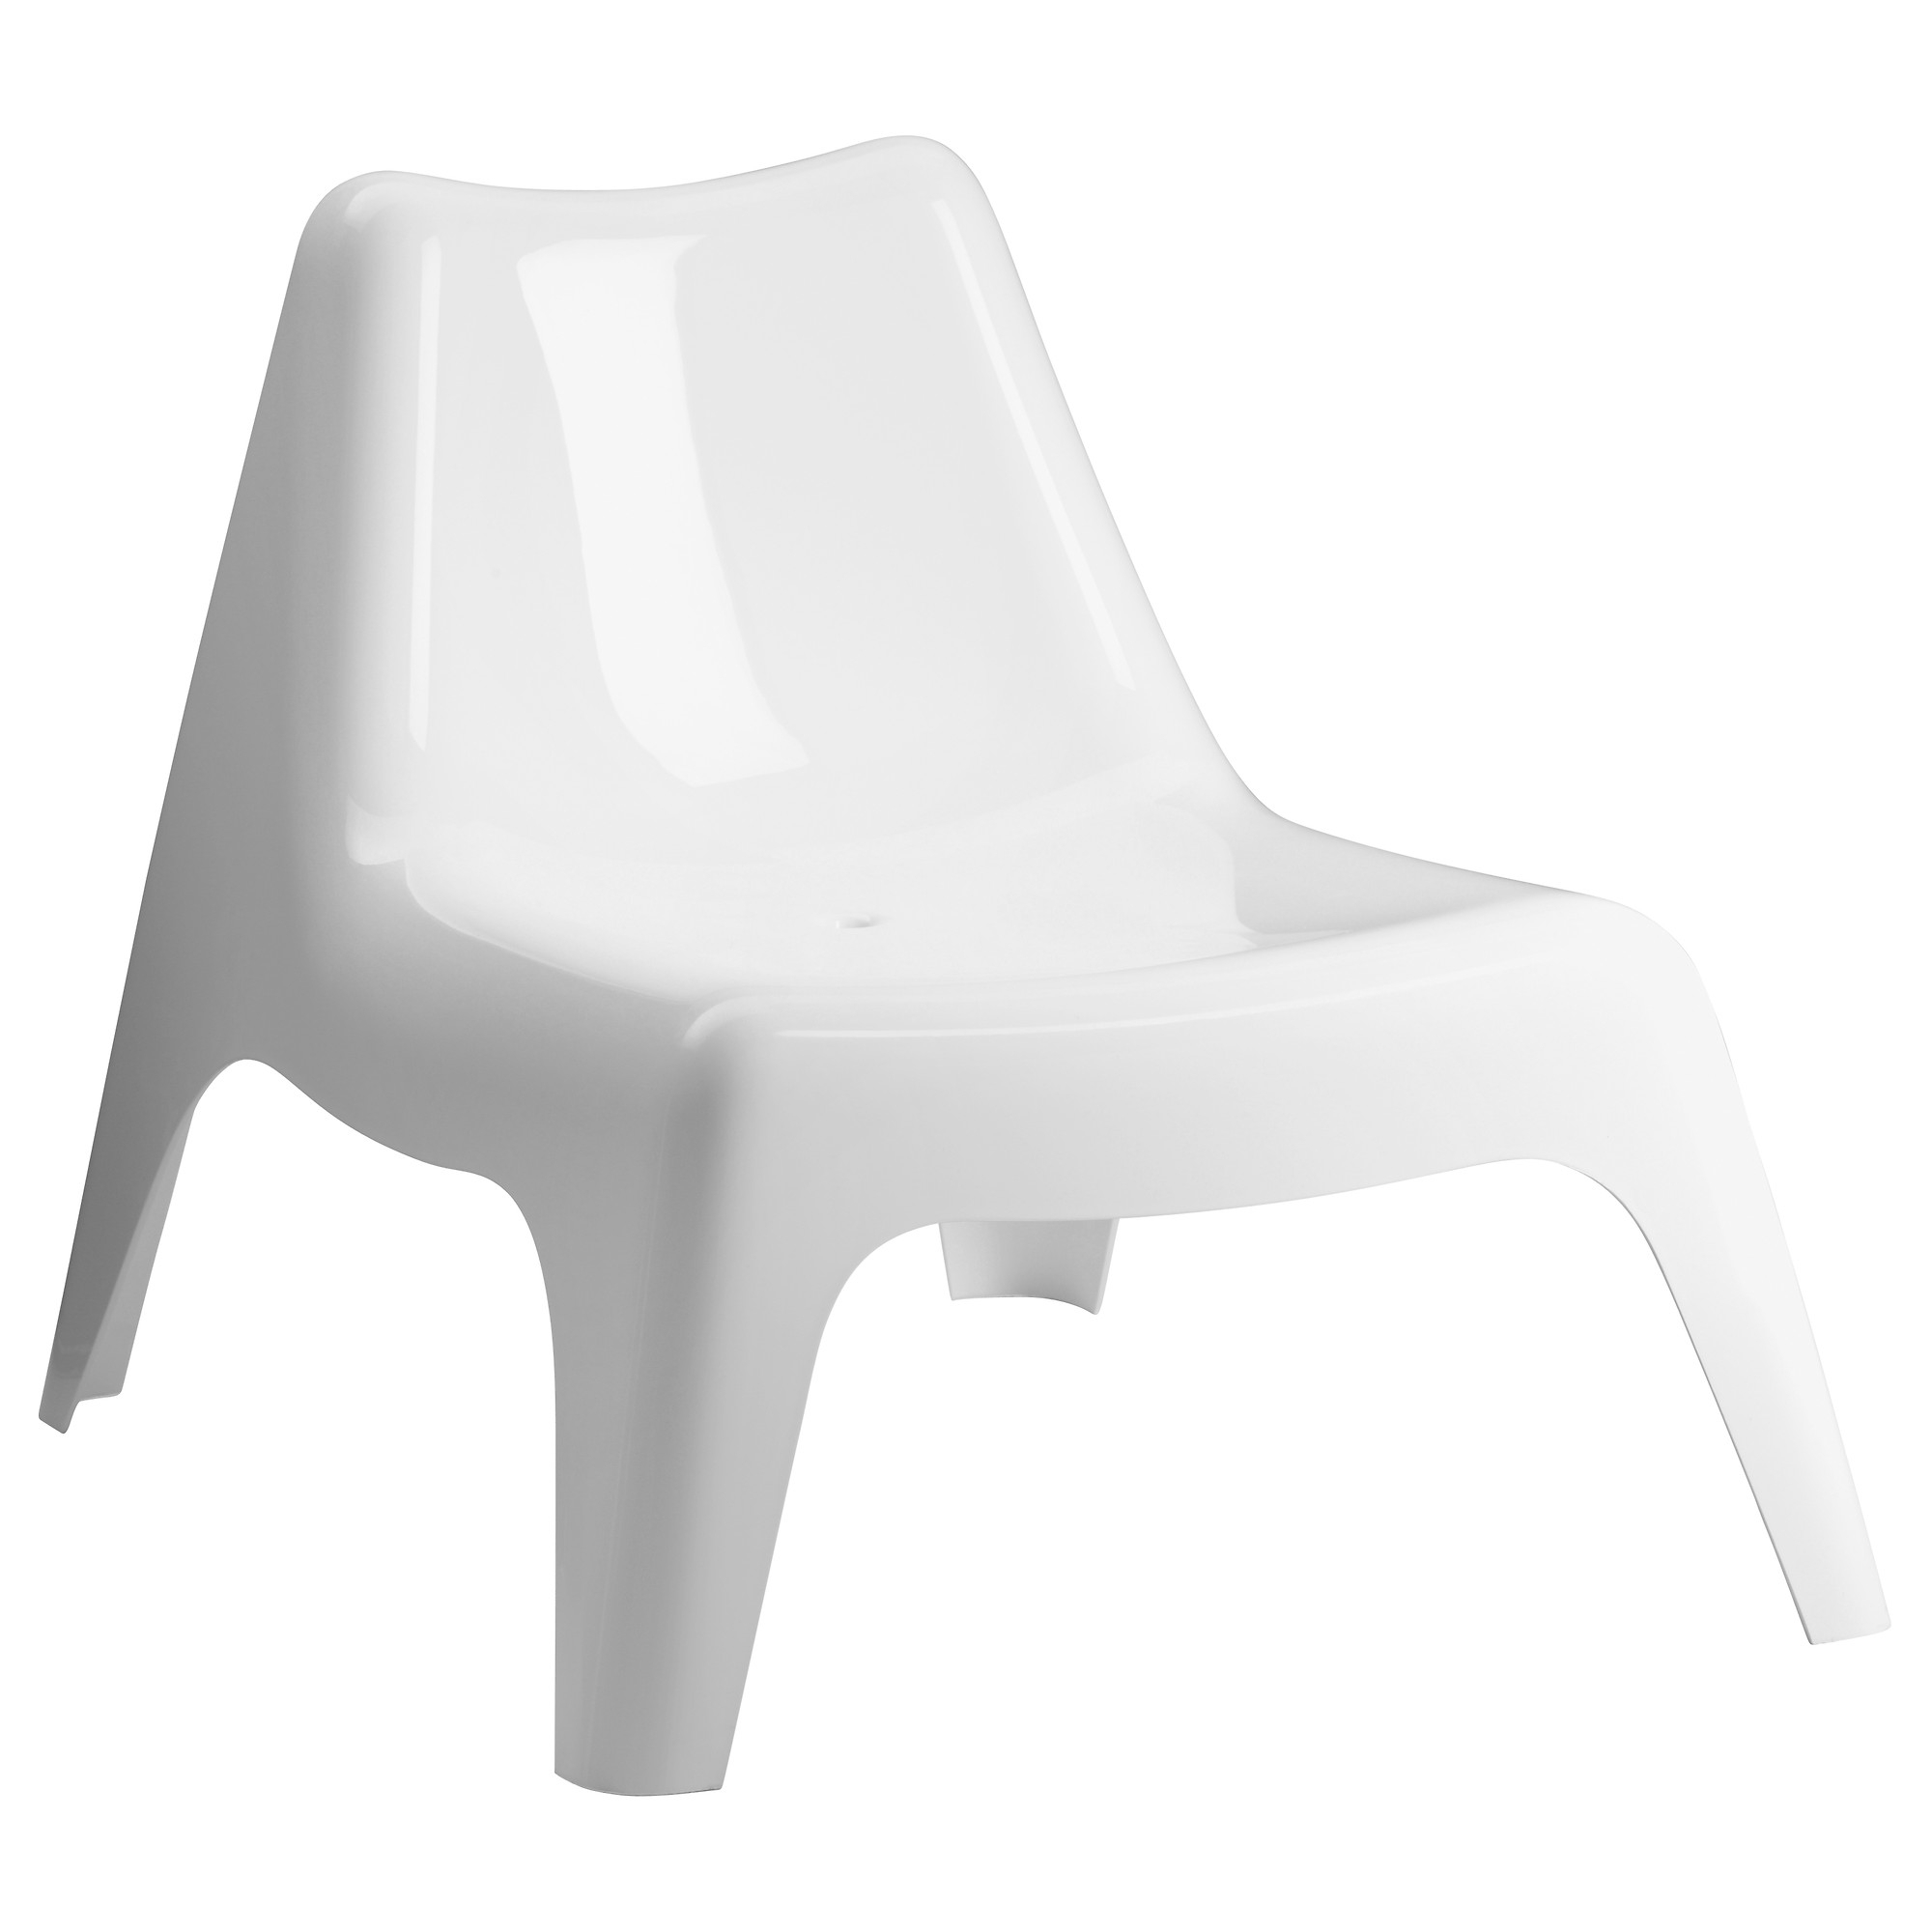 Ikea Outdoor Chaise Lounge Chairs With Regard To Latest Ikea Ps Vågö Chair, Outdoor – White – Ikea (View 5 of 15)